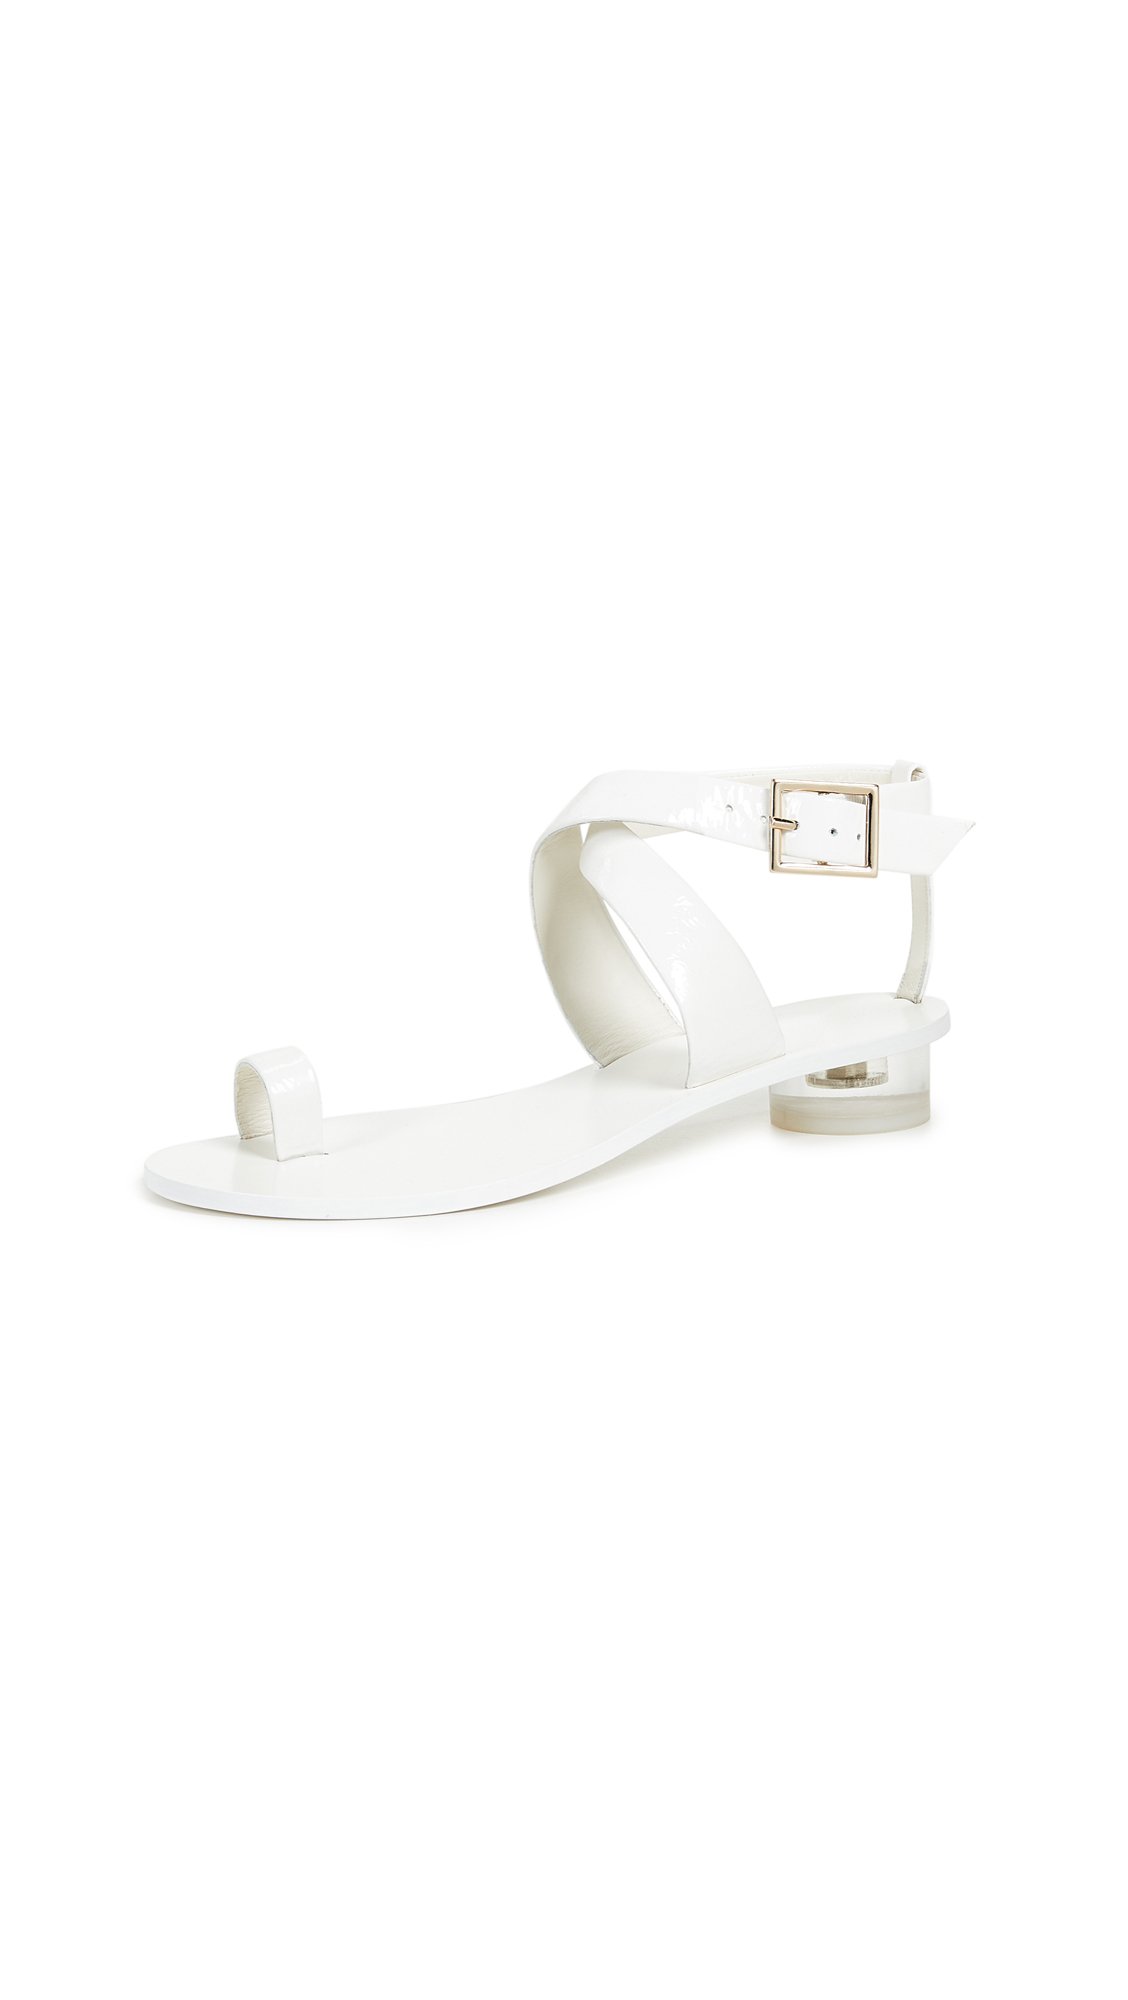 Tibi Hanson City Sandals - White/White